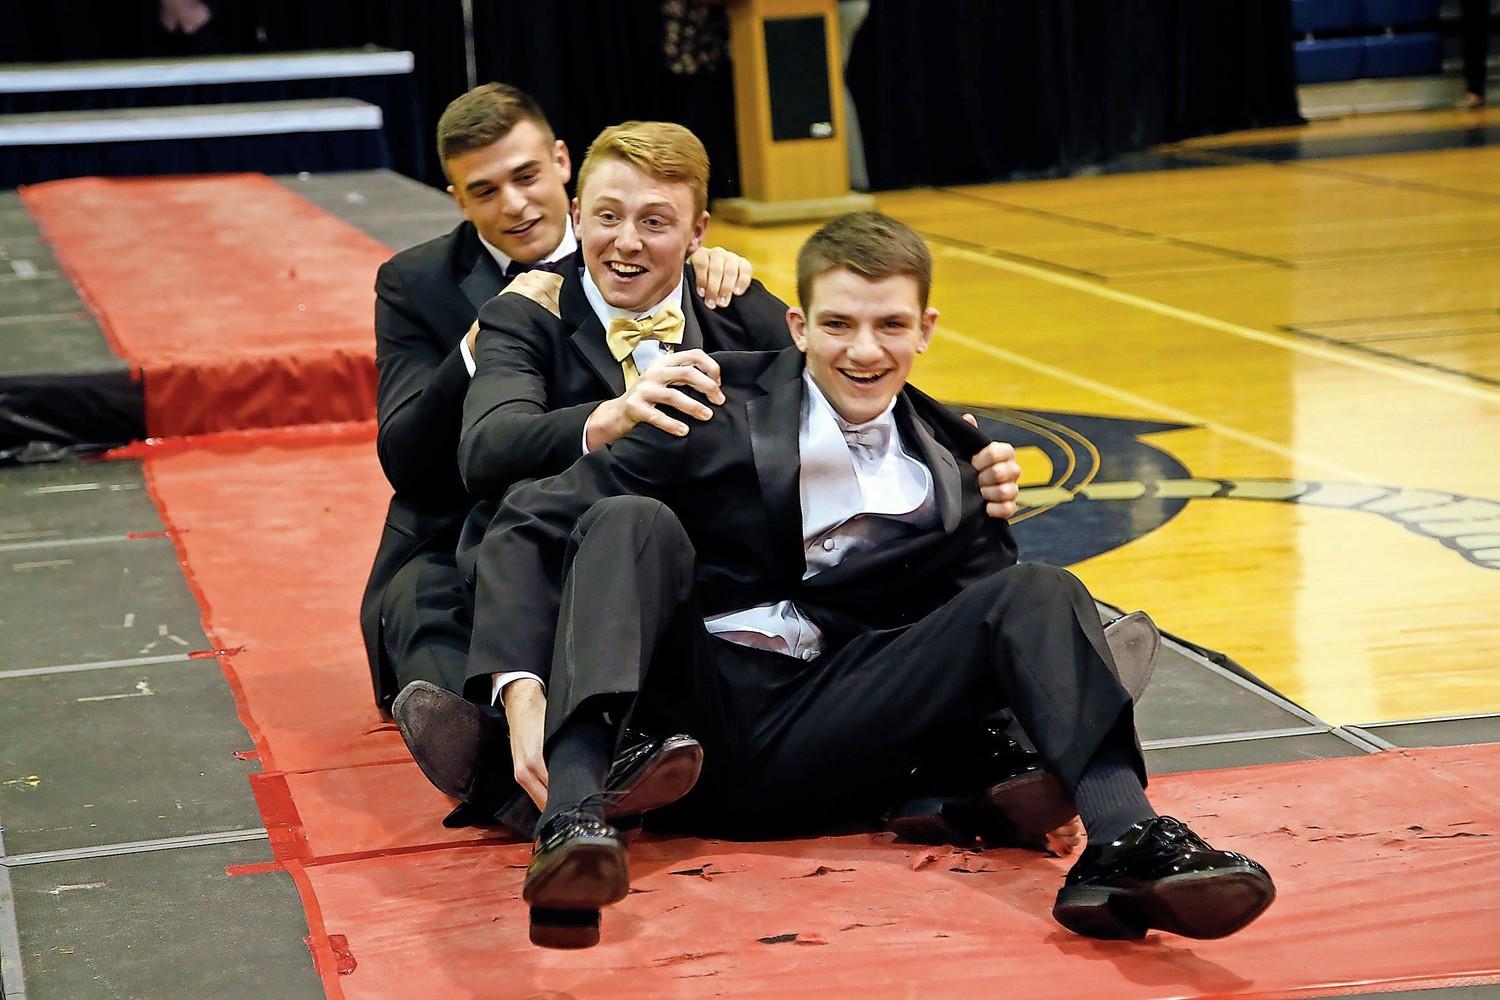 Charles Ward, front, Tommy Heuer and Dylan Judd take to the floor for an alternative modeling pose after completing their initial catwalks.